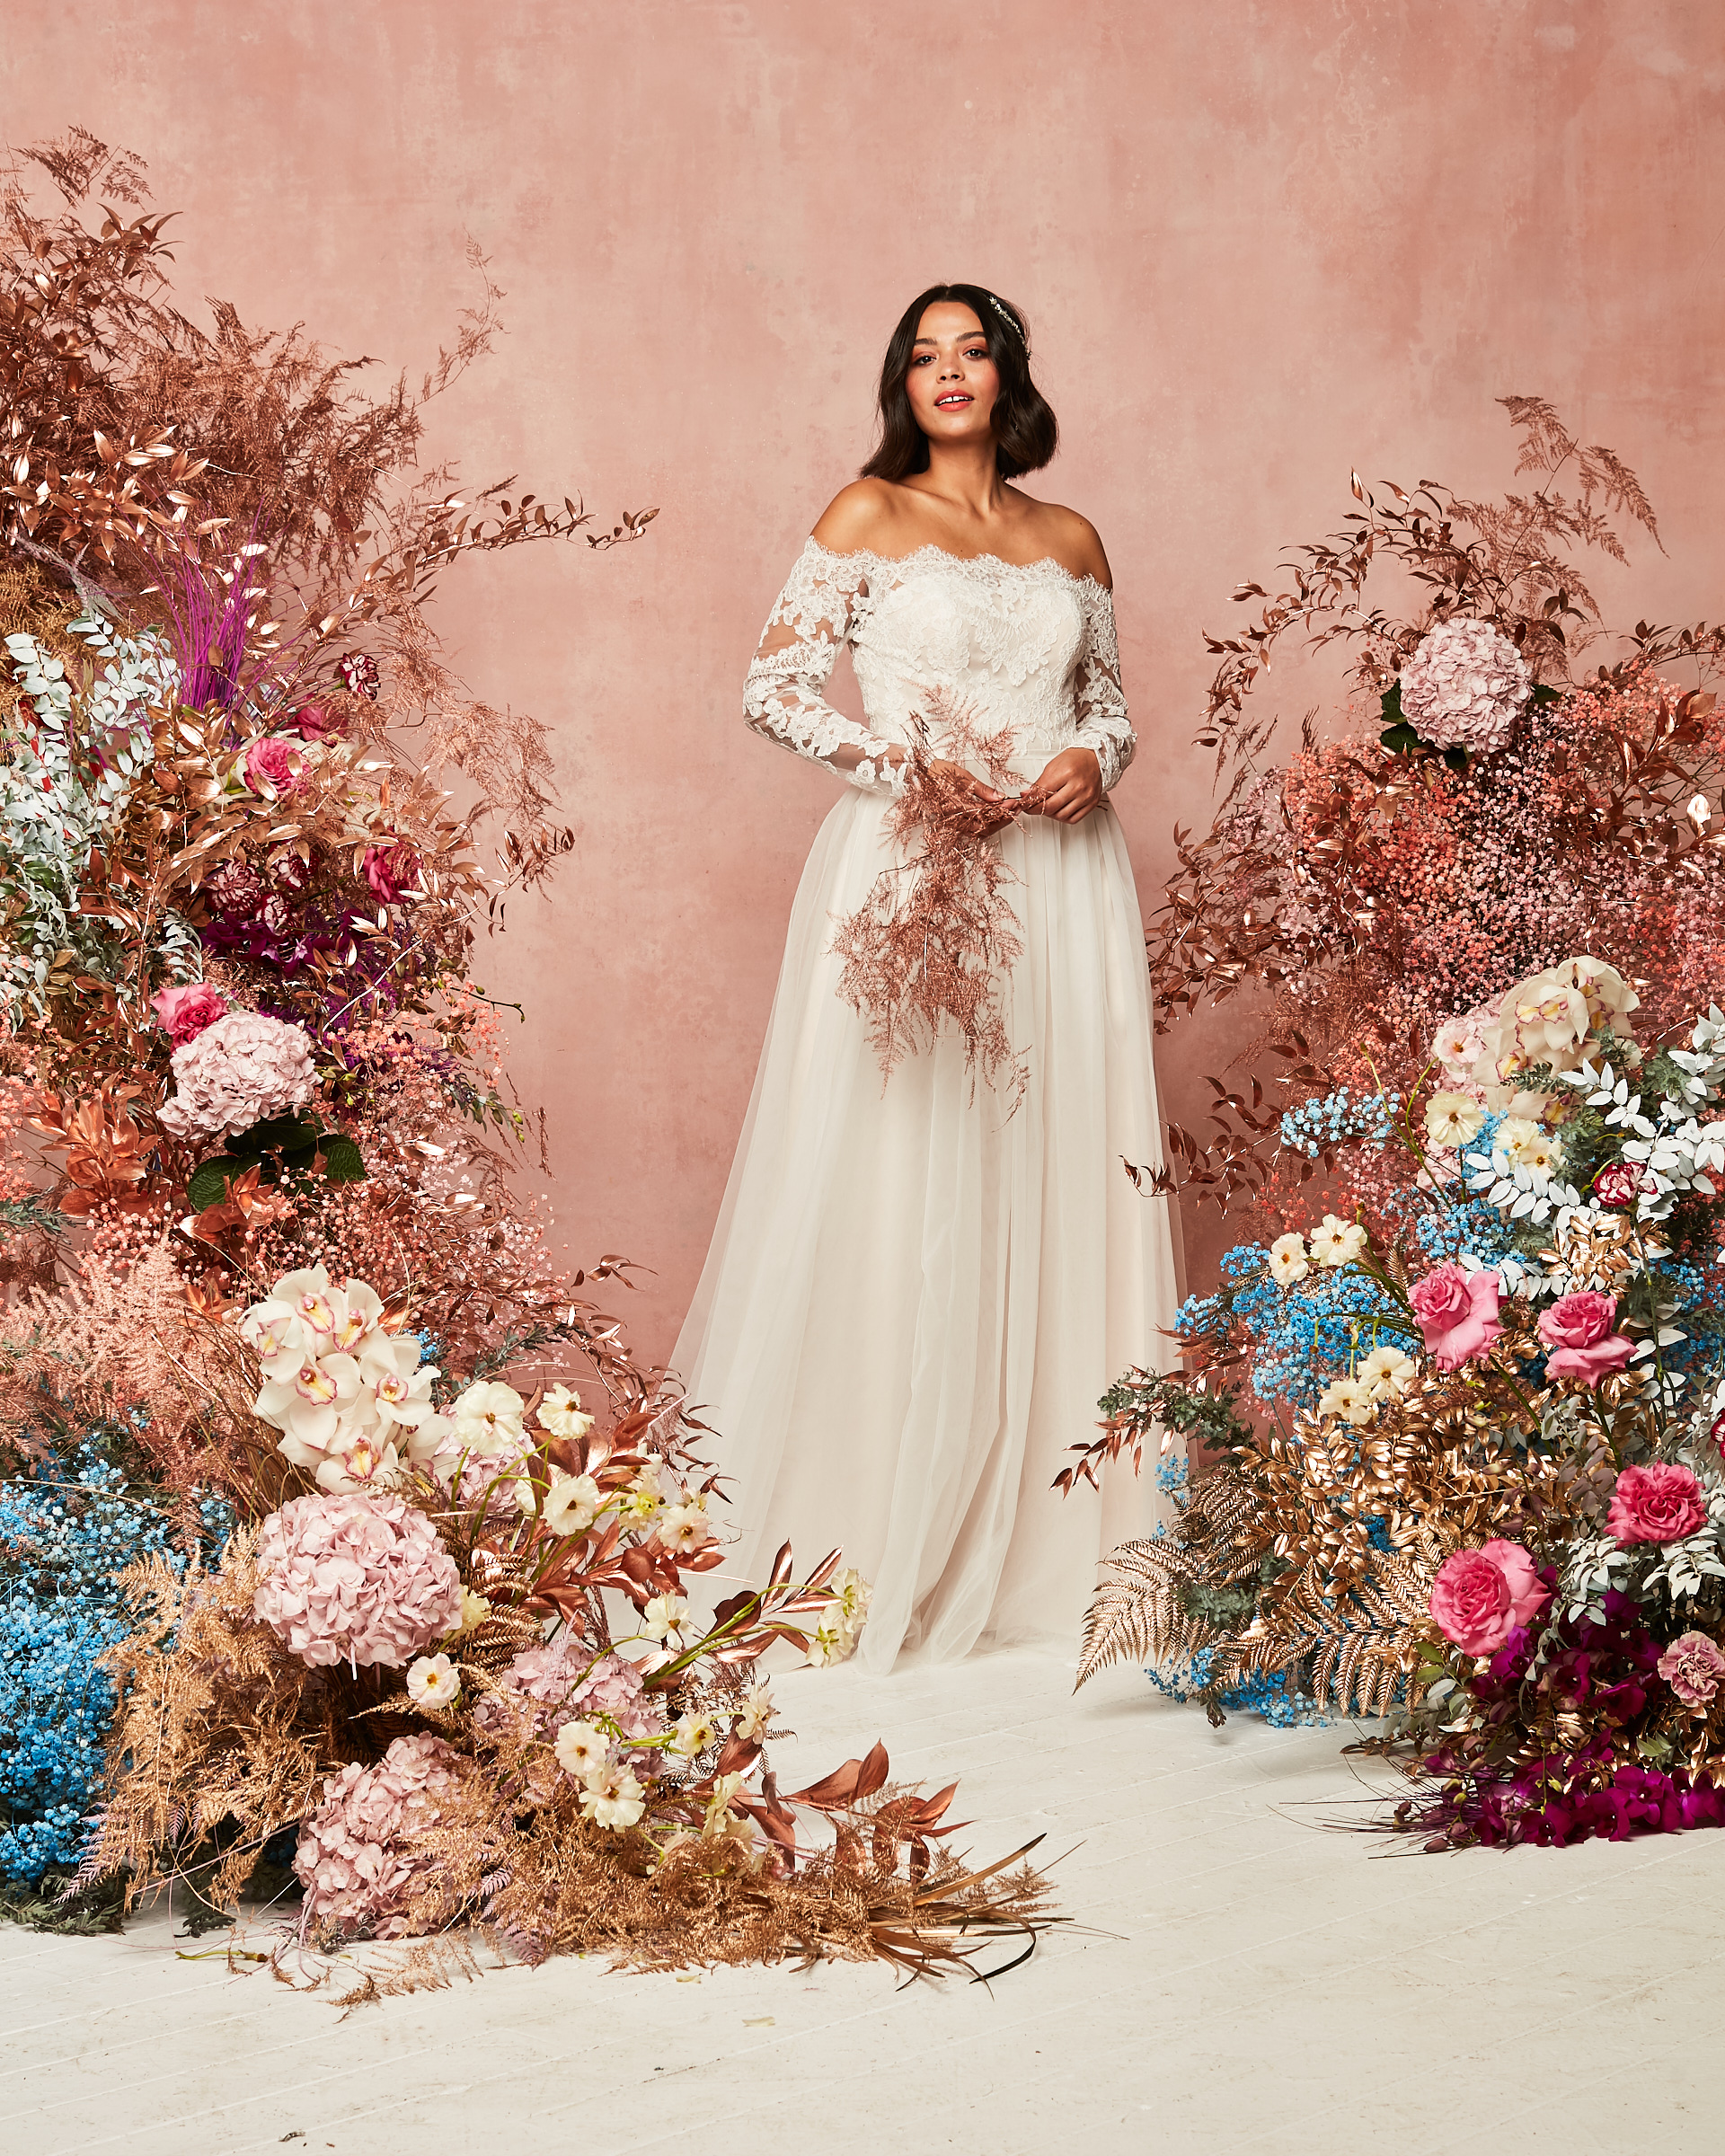 off shoulder long lace sleeve wedding dress from David's Bridal Spring 2021 Collection